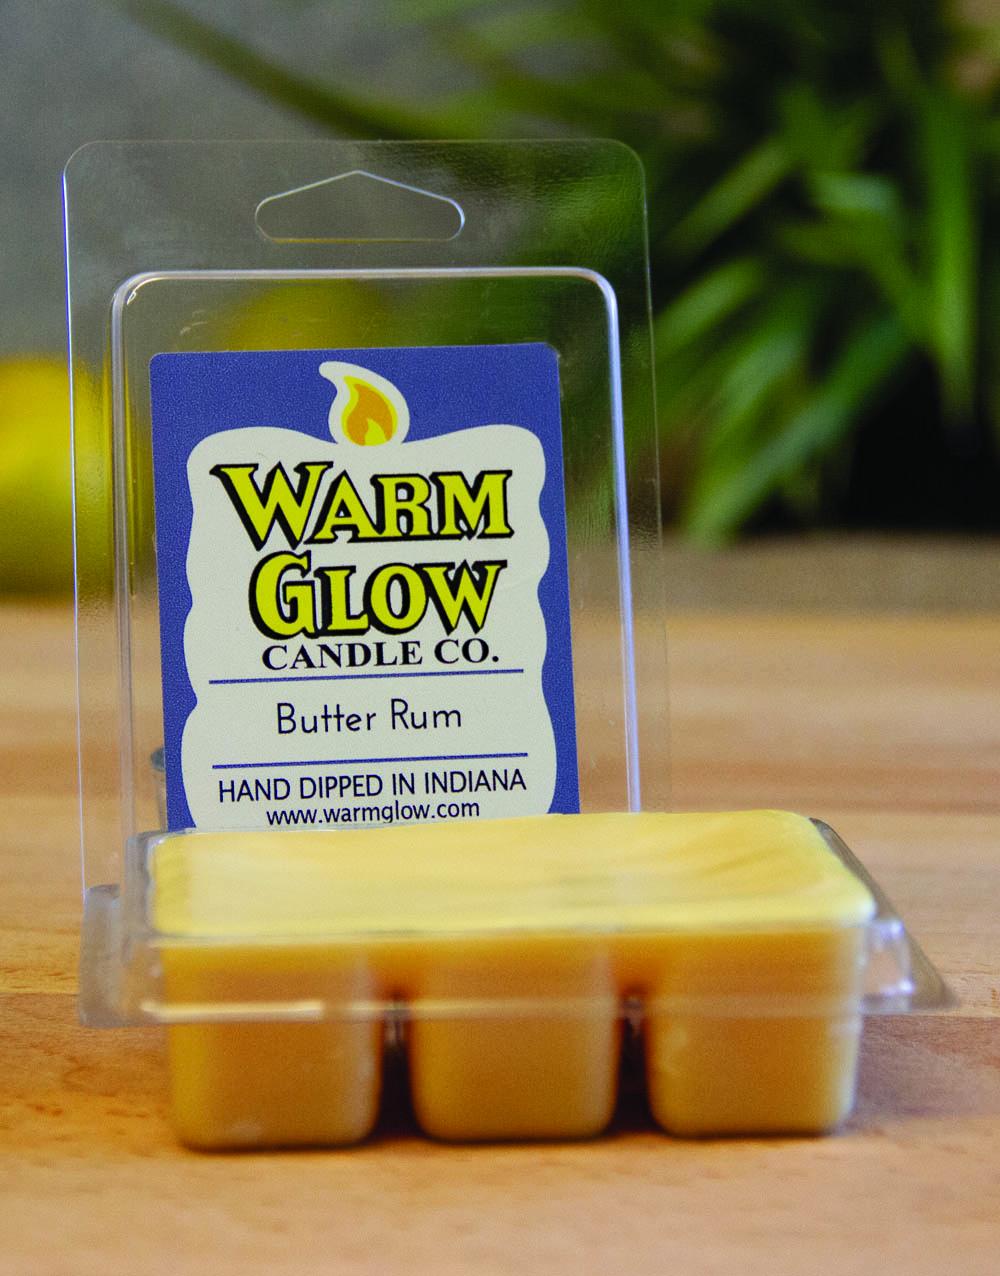 Butter-Rum wax melts